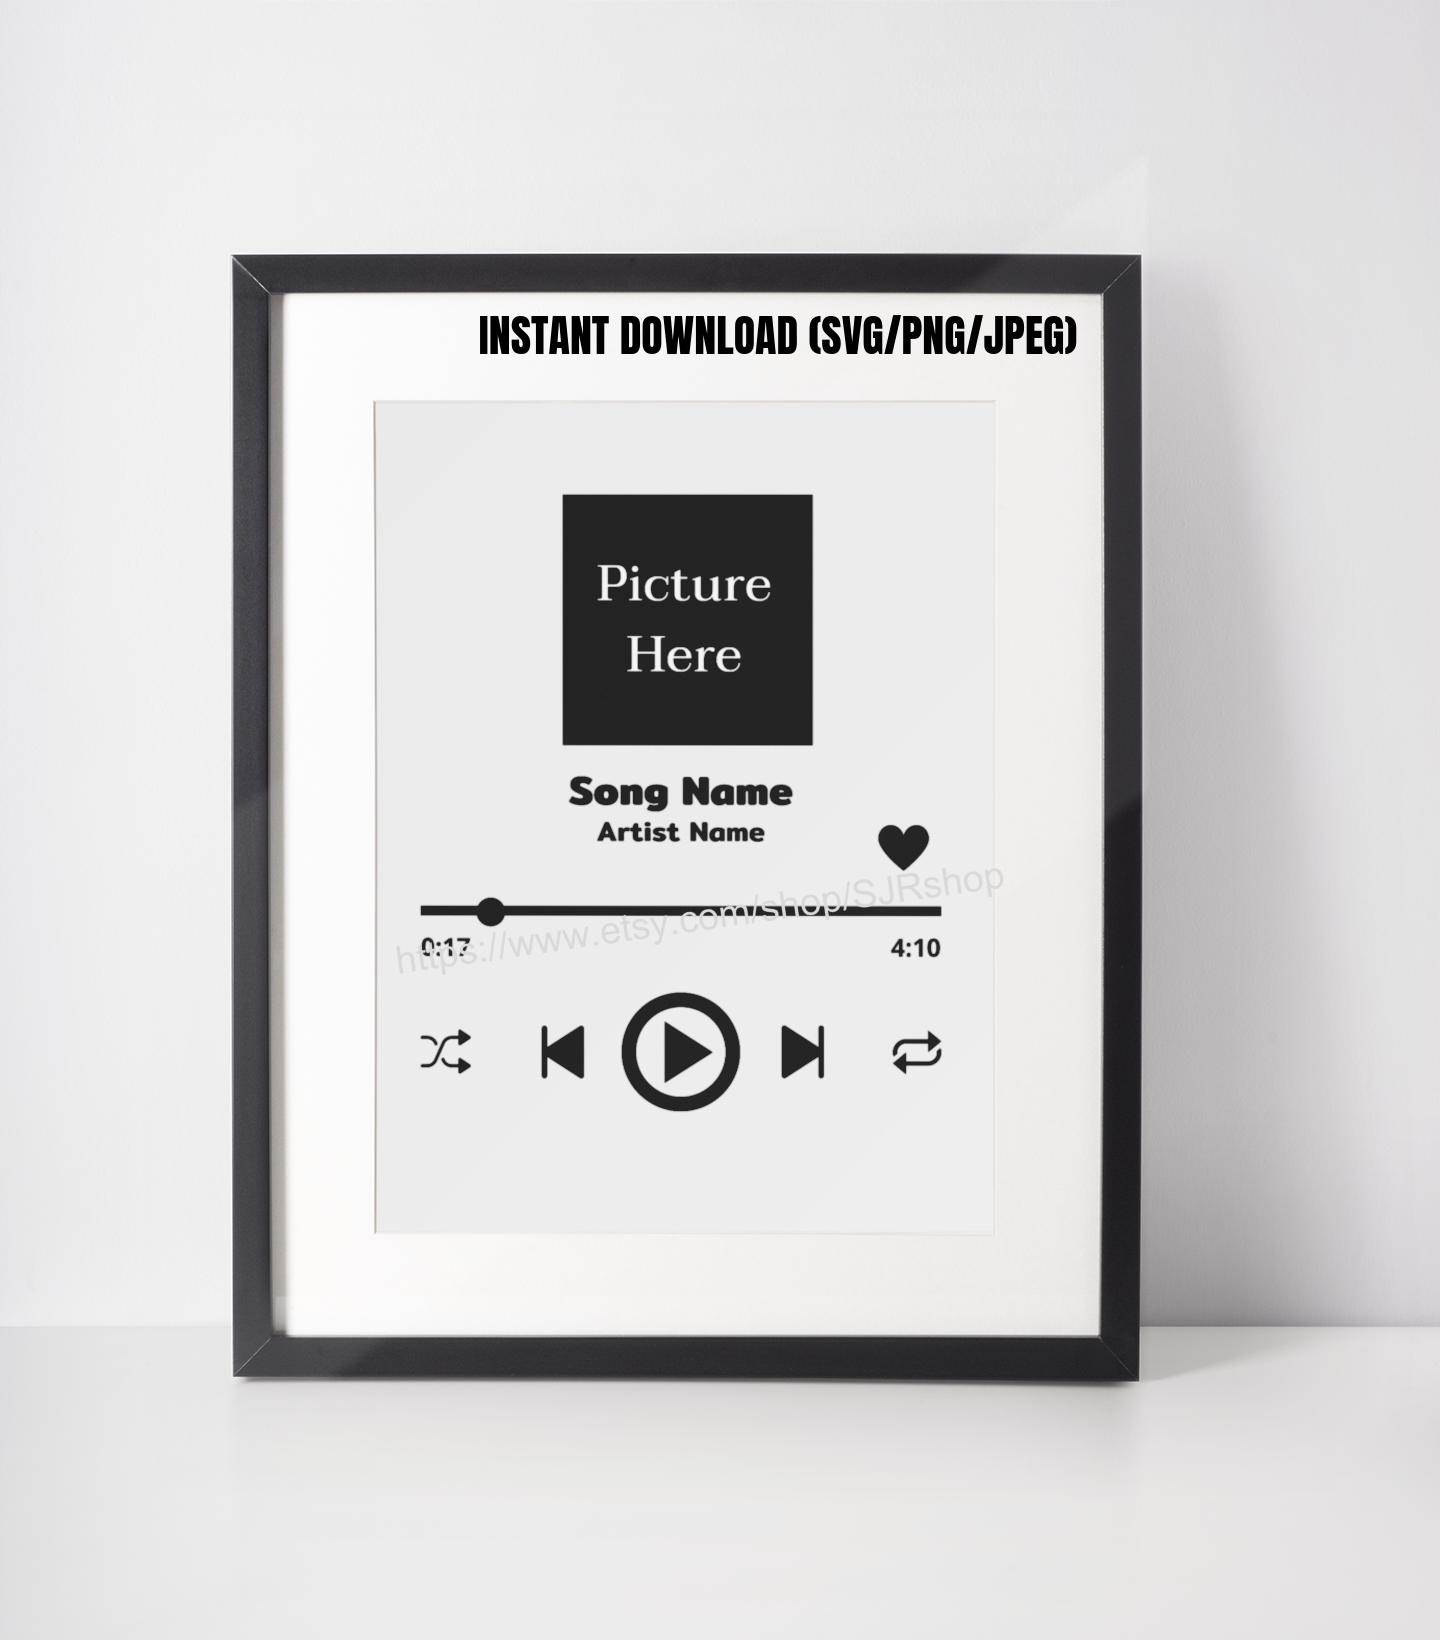 Music Player Svg Audio Control Buttons Svg Spotify Svg Song Art Svg Music Cover Svg Music Svg Svg Png Jpeg Print Ready Files In 2021 Music Players Songs Spotify